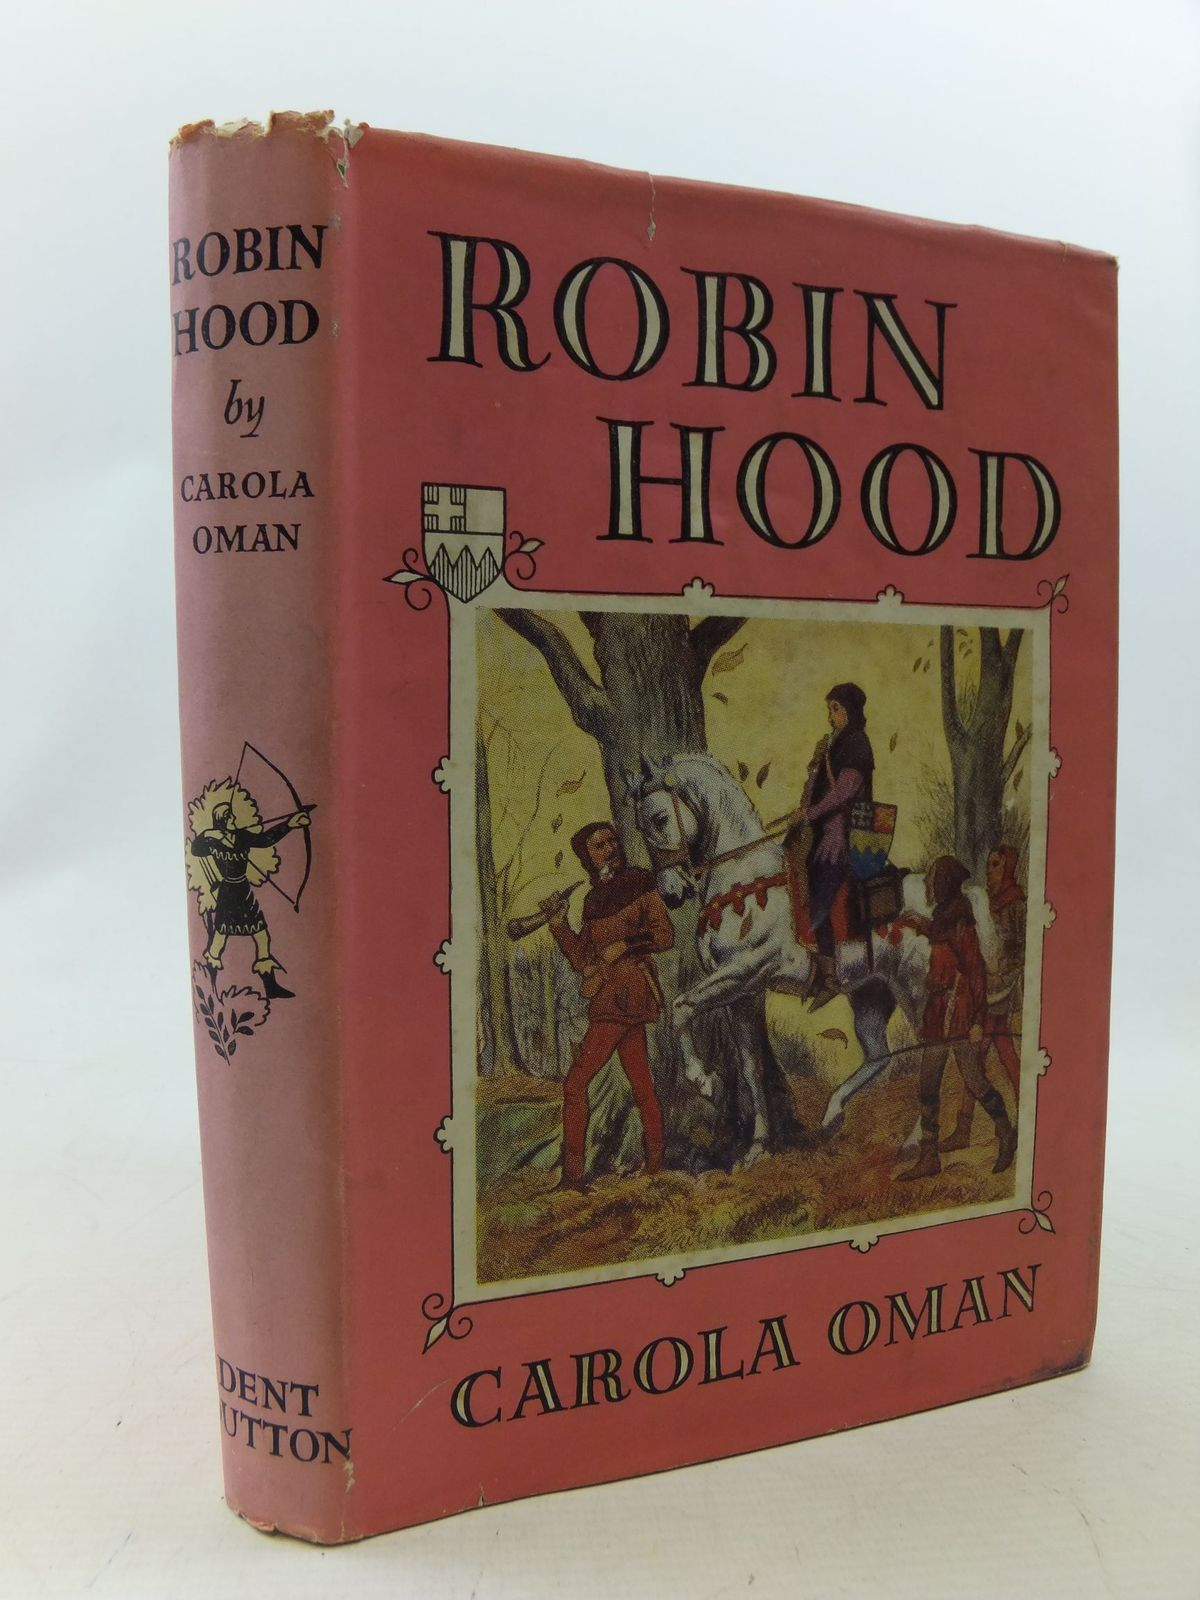 stella  rose's books  robin hood the prince of outlaws